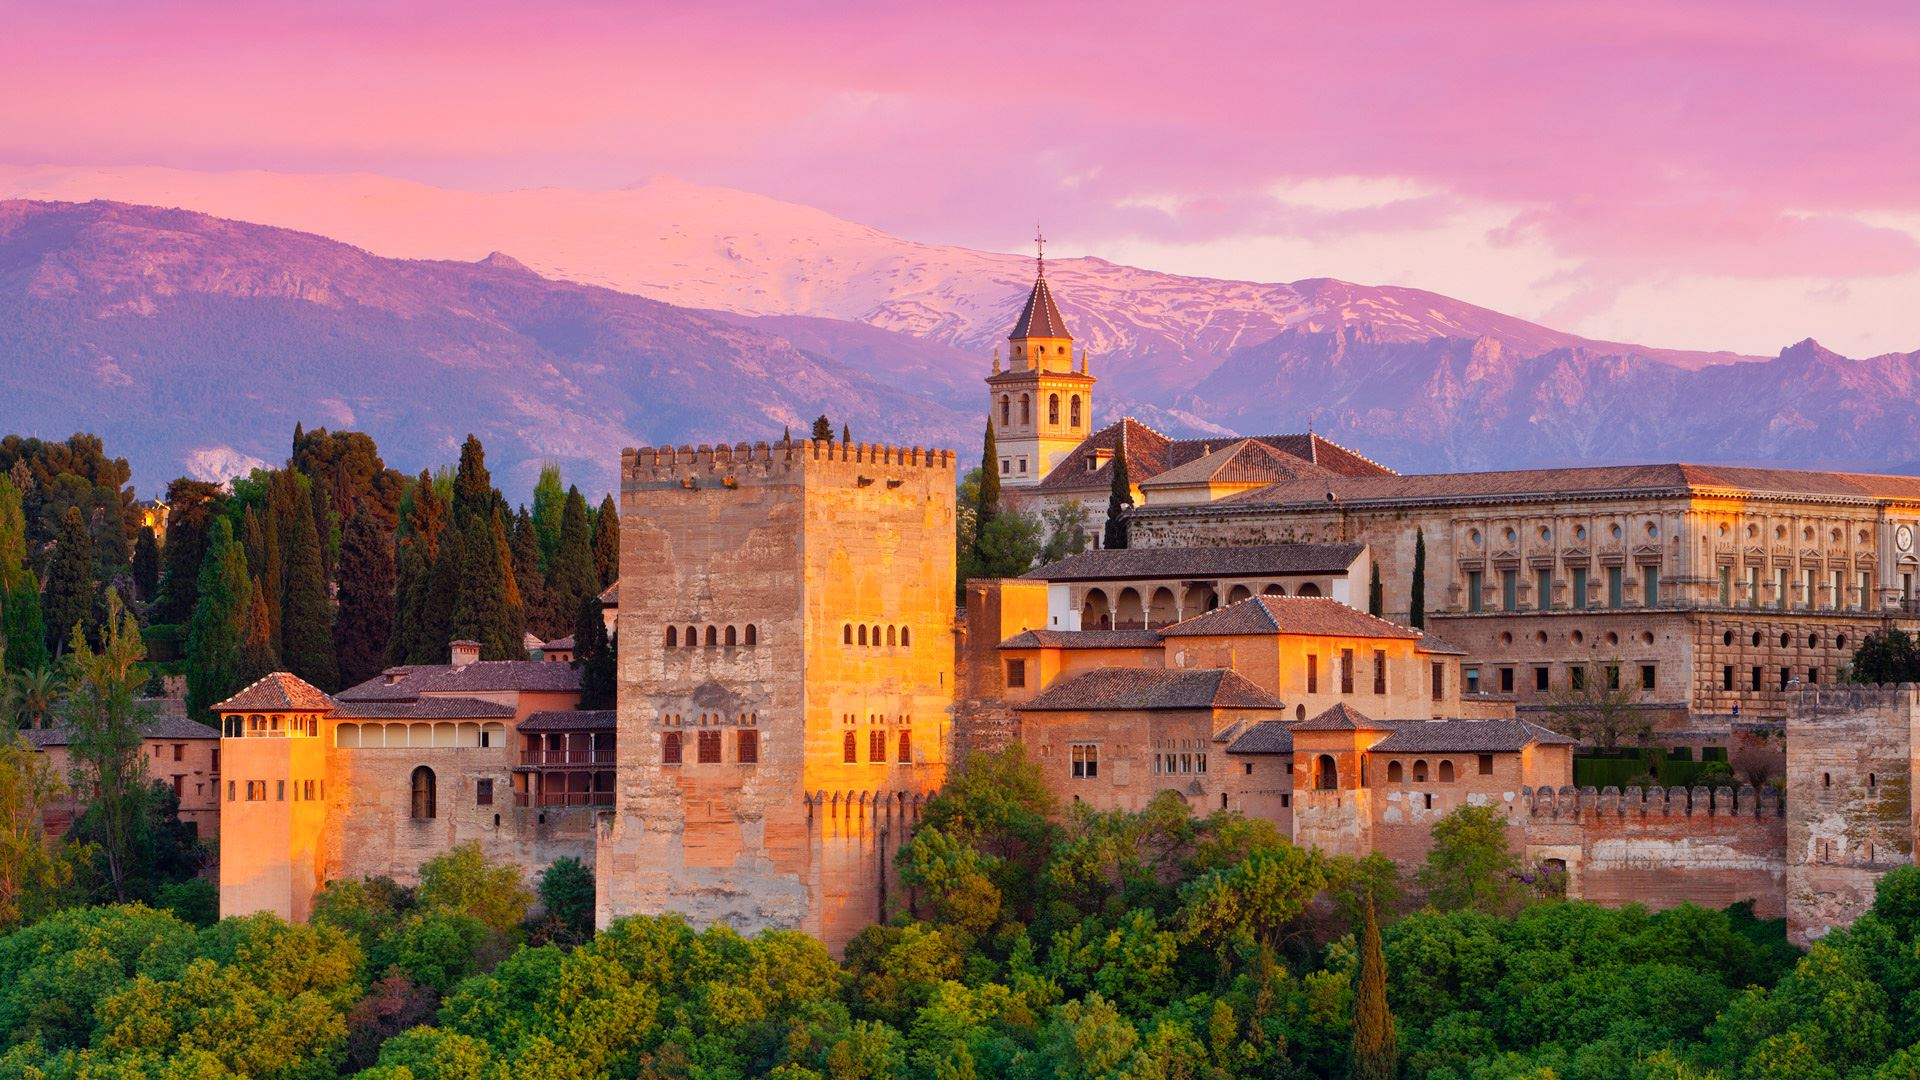 Most Stunning Buildings in the World Most Stunning Buildings in the World The Most Stunning Buildings in the World According to Lonely Planet  alhambra palace at sunset  granada  spain Copy